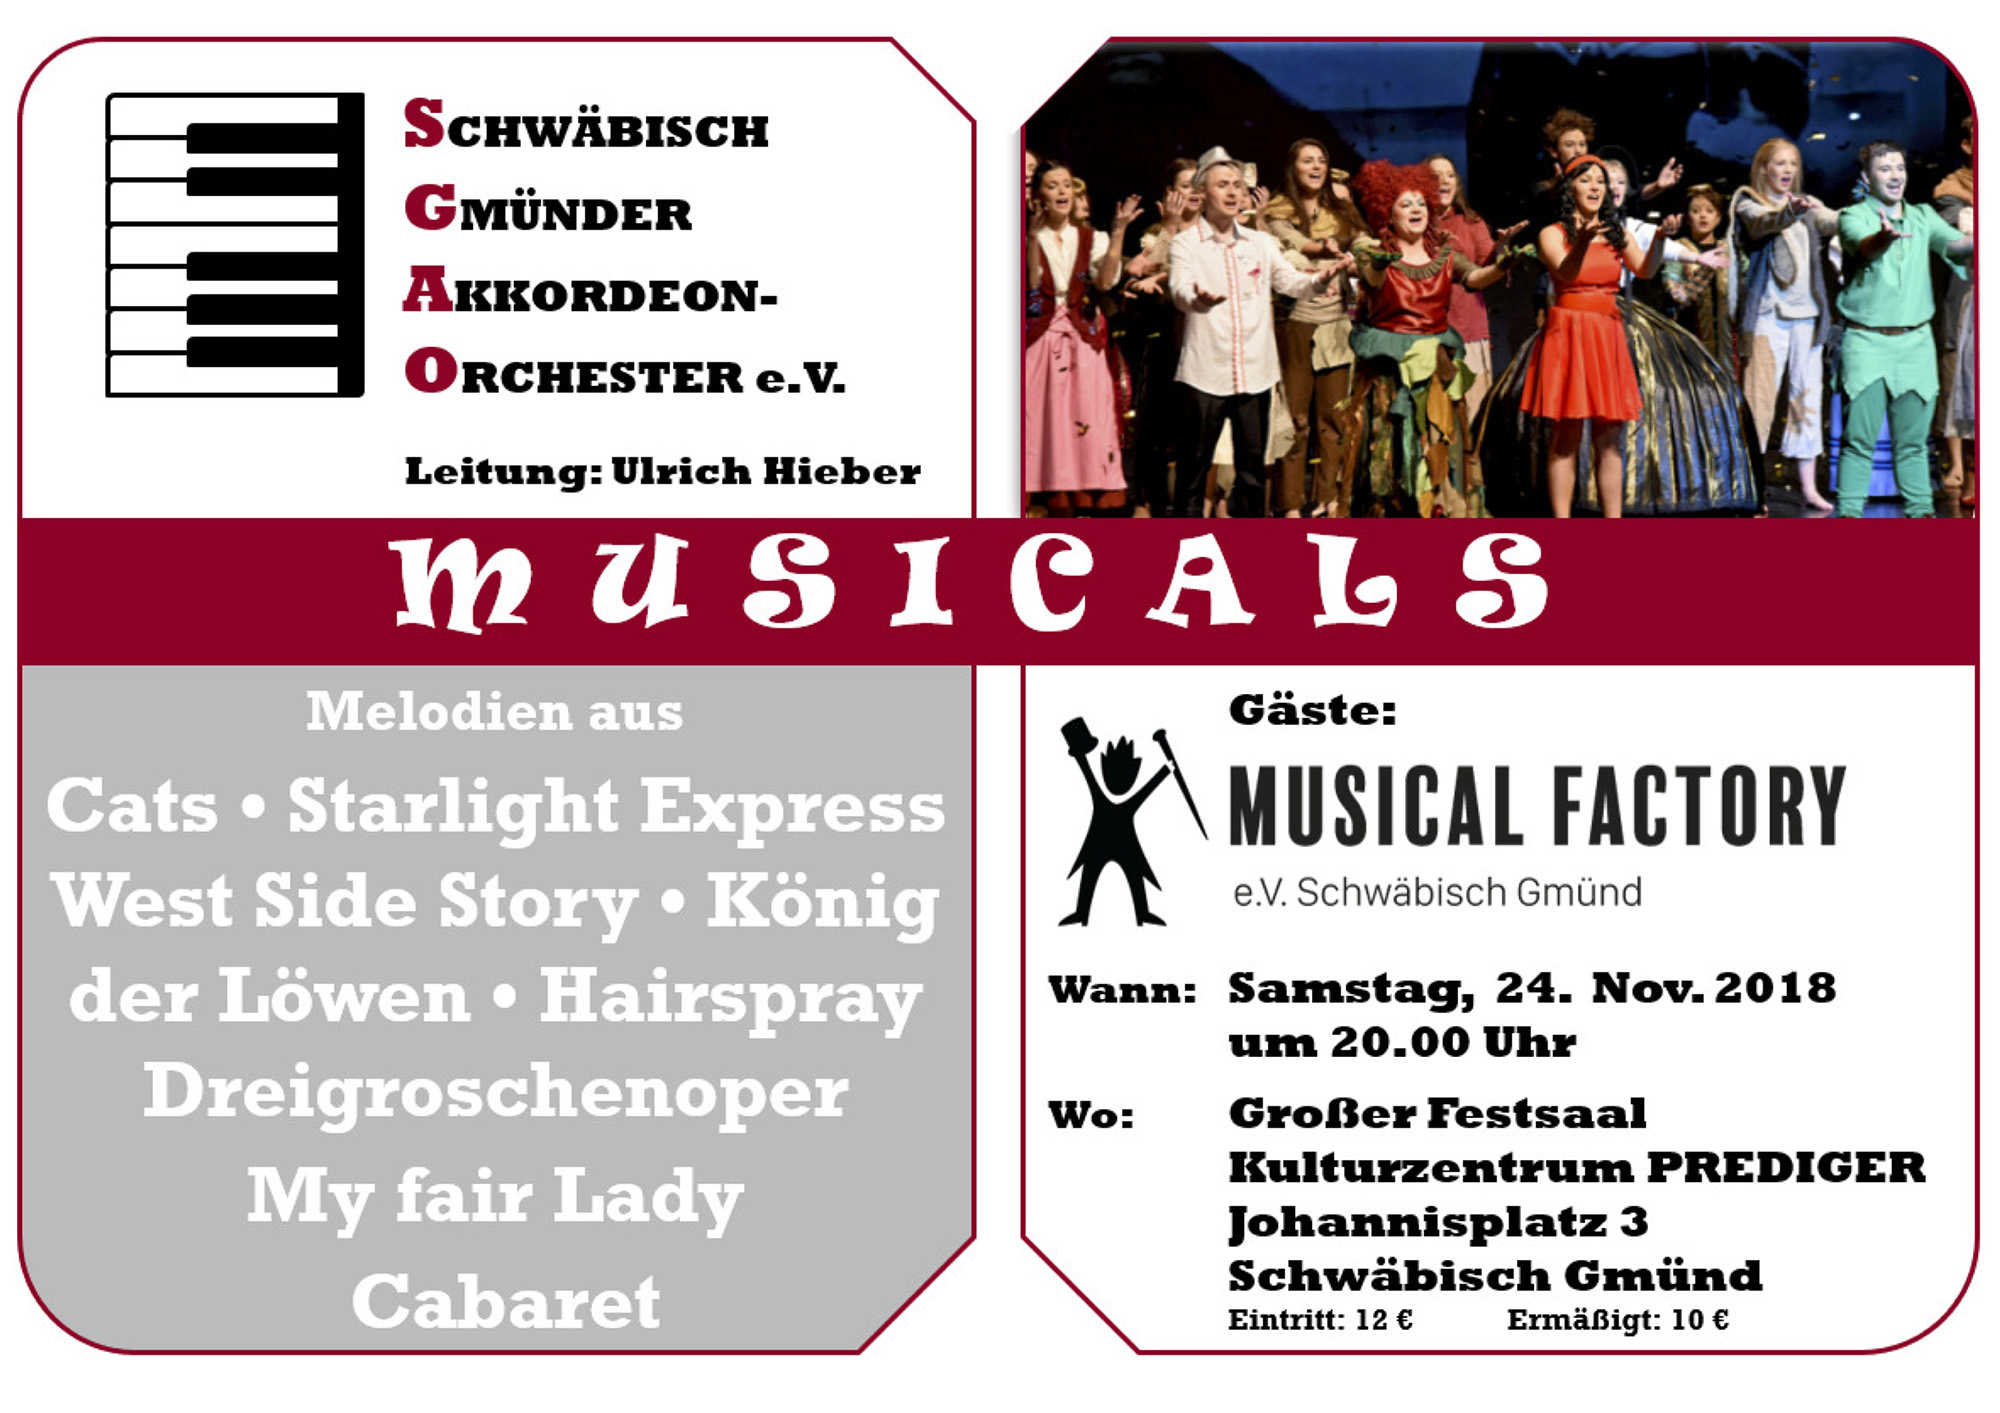 Fascinating Rhythm - MUSICALS